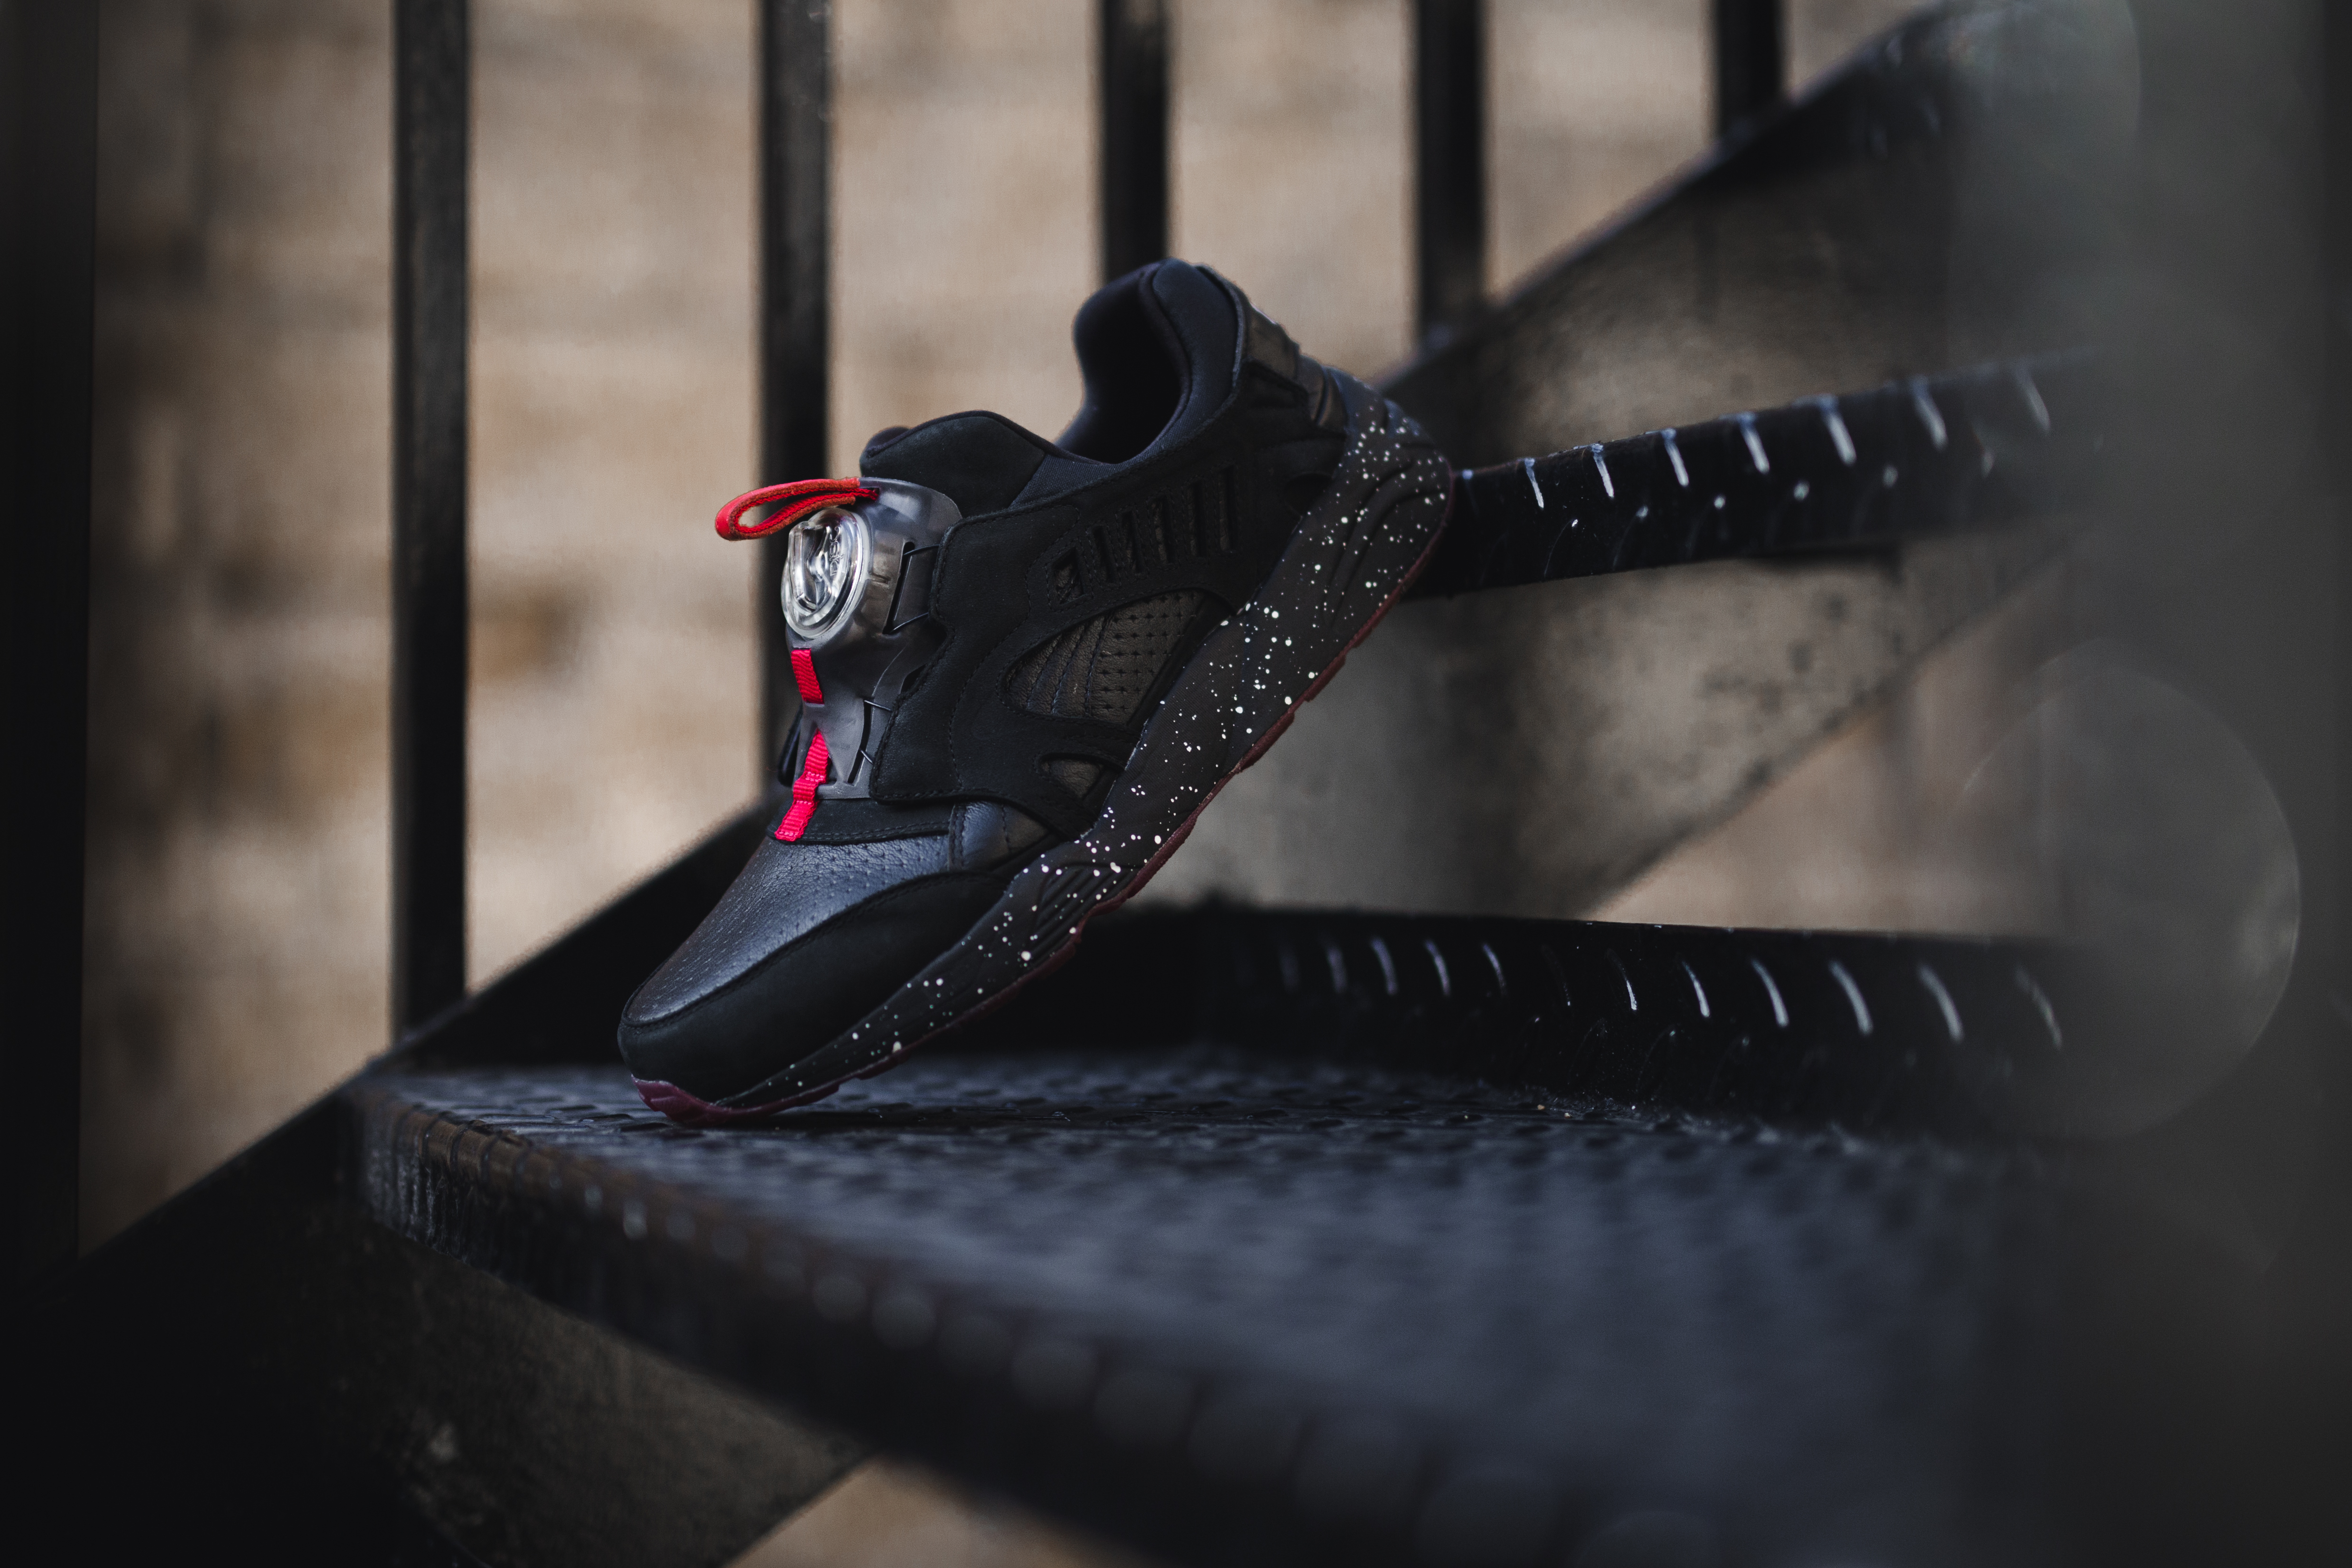 Trapstar x PUMA Fall/Winter 2015 Collection